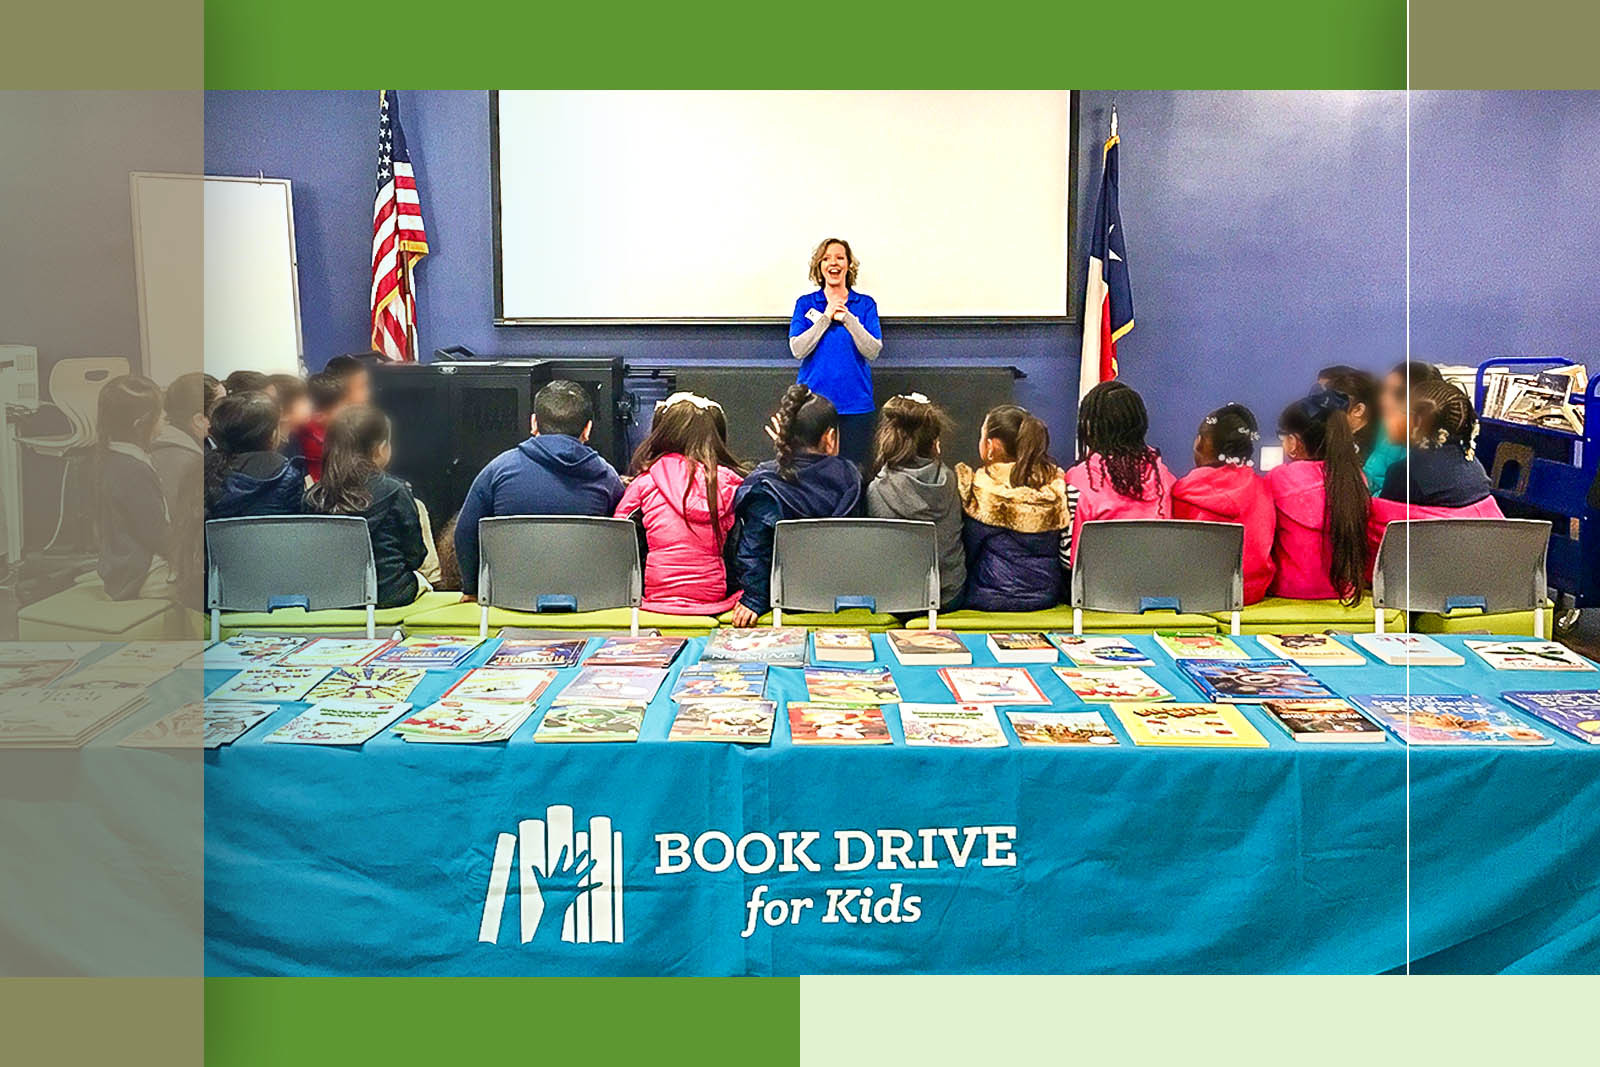 Book Drive for Kids co-founder Michelle Cook is dedicated to providing free books to Texas students through school events like this one from 2019. Last year, the nonprofit served more than 9,600 students.